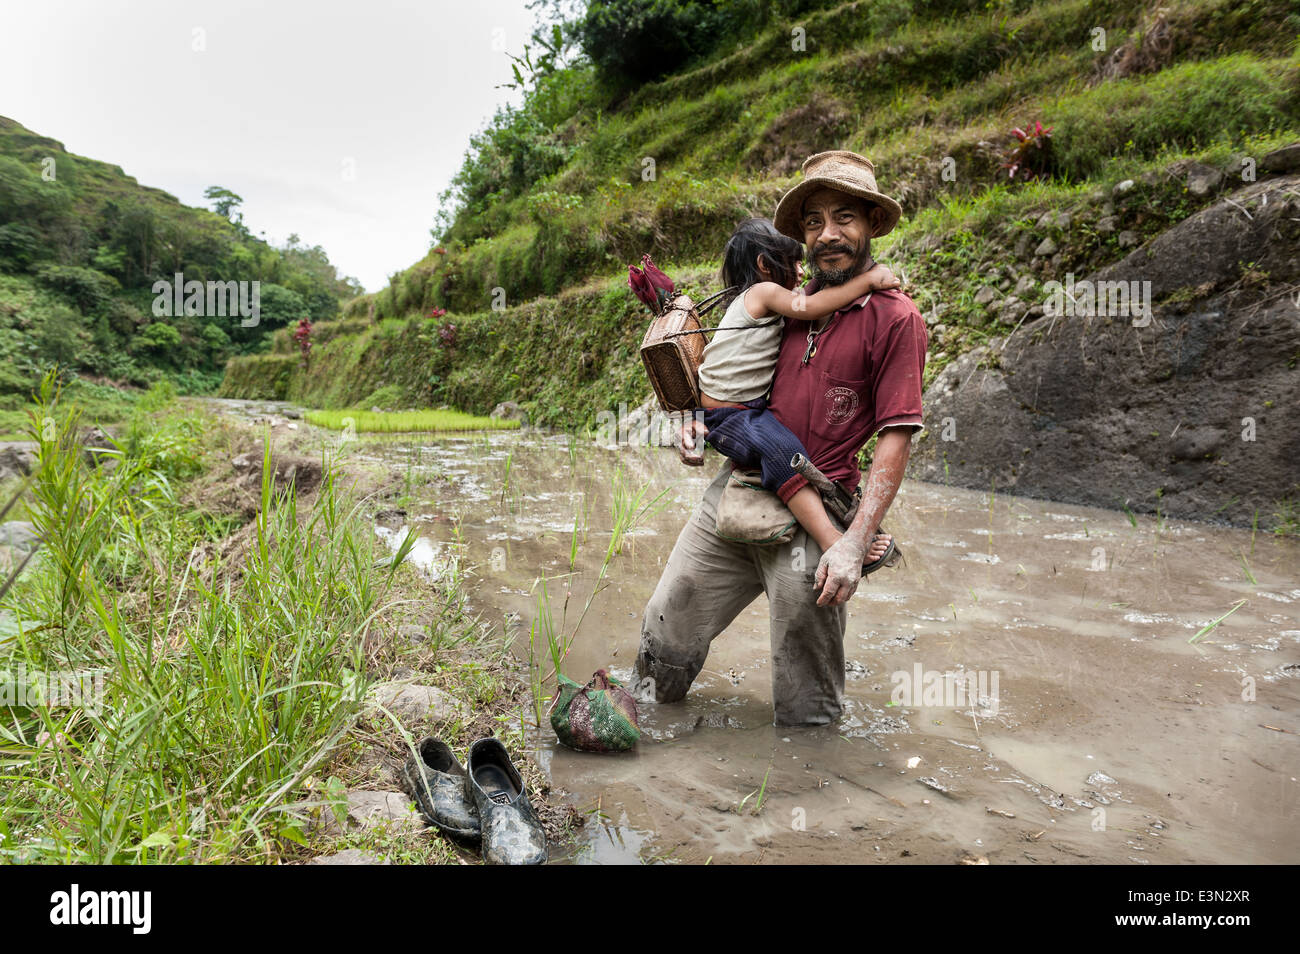 Man with his daughter in a ricefield, Luzon, Philippines. - Stock Image